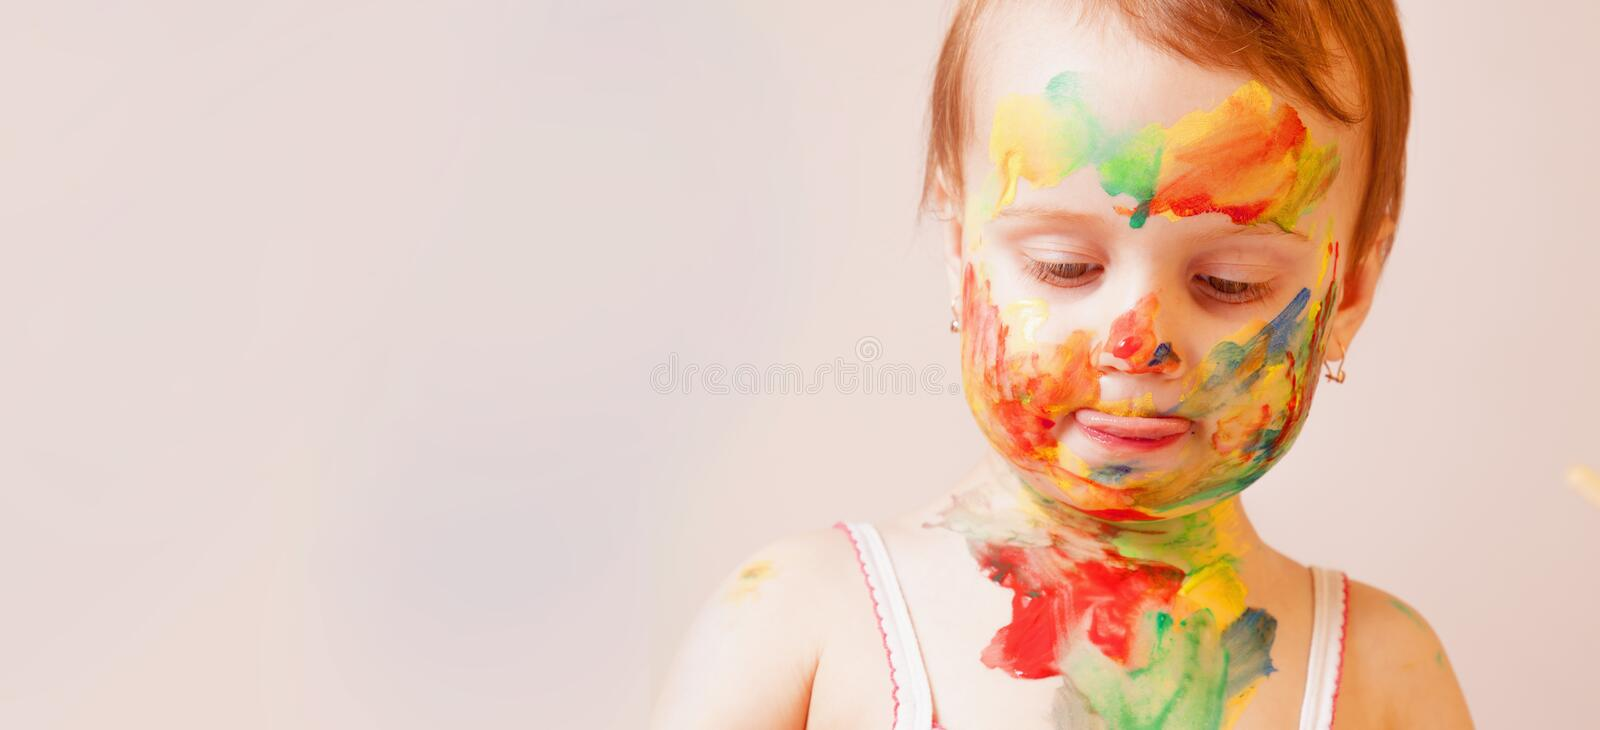 Process of painting. Little cute girl with children`s colorful makeup showing painted hands. Art concept.  royalty free stock image